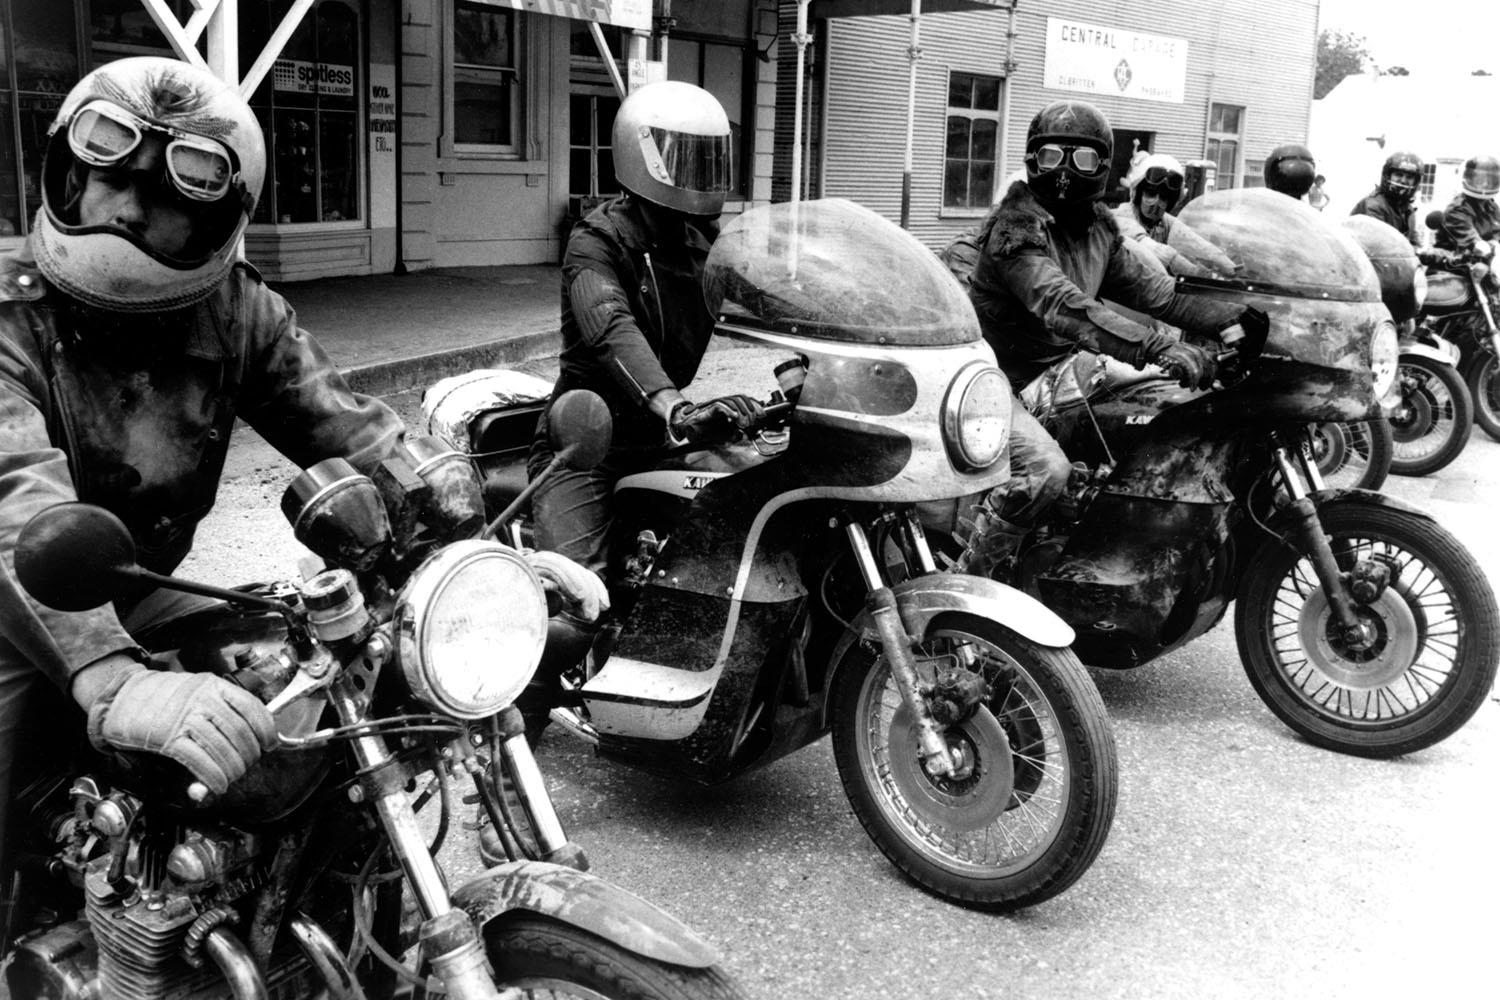 A lot of the riding in Mad Max was performed by Vigilante bike club members